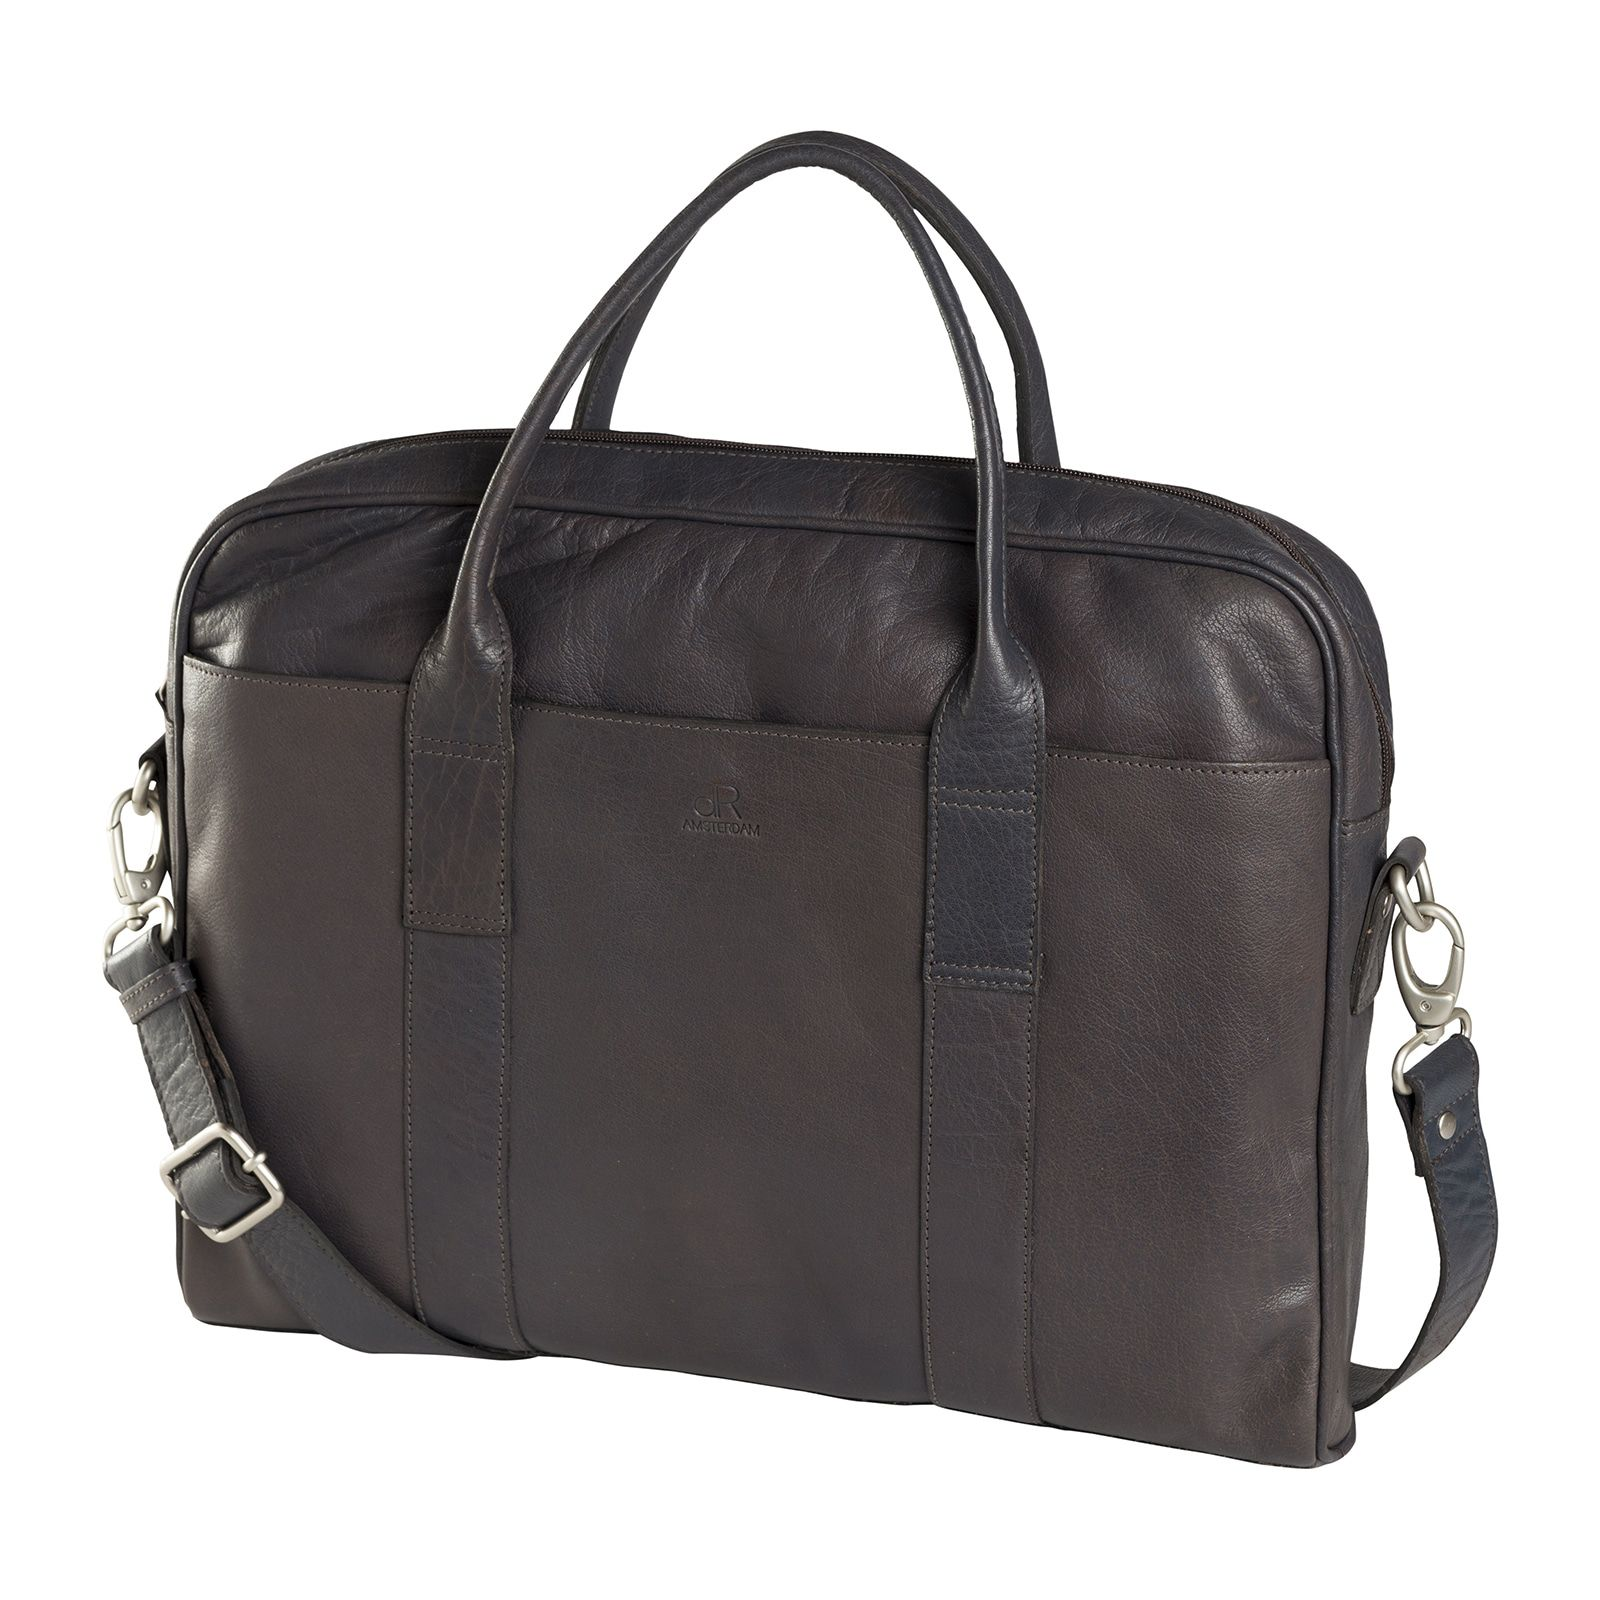 de Rooy dR Amsterdam Icon Laptoptas 13.3 inch Taupe